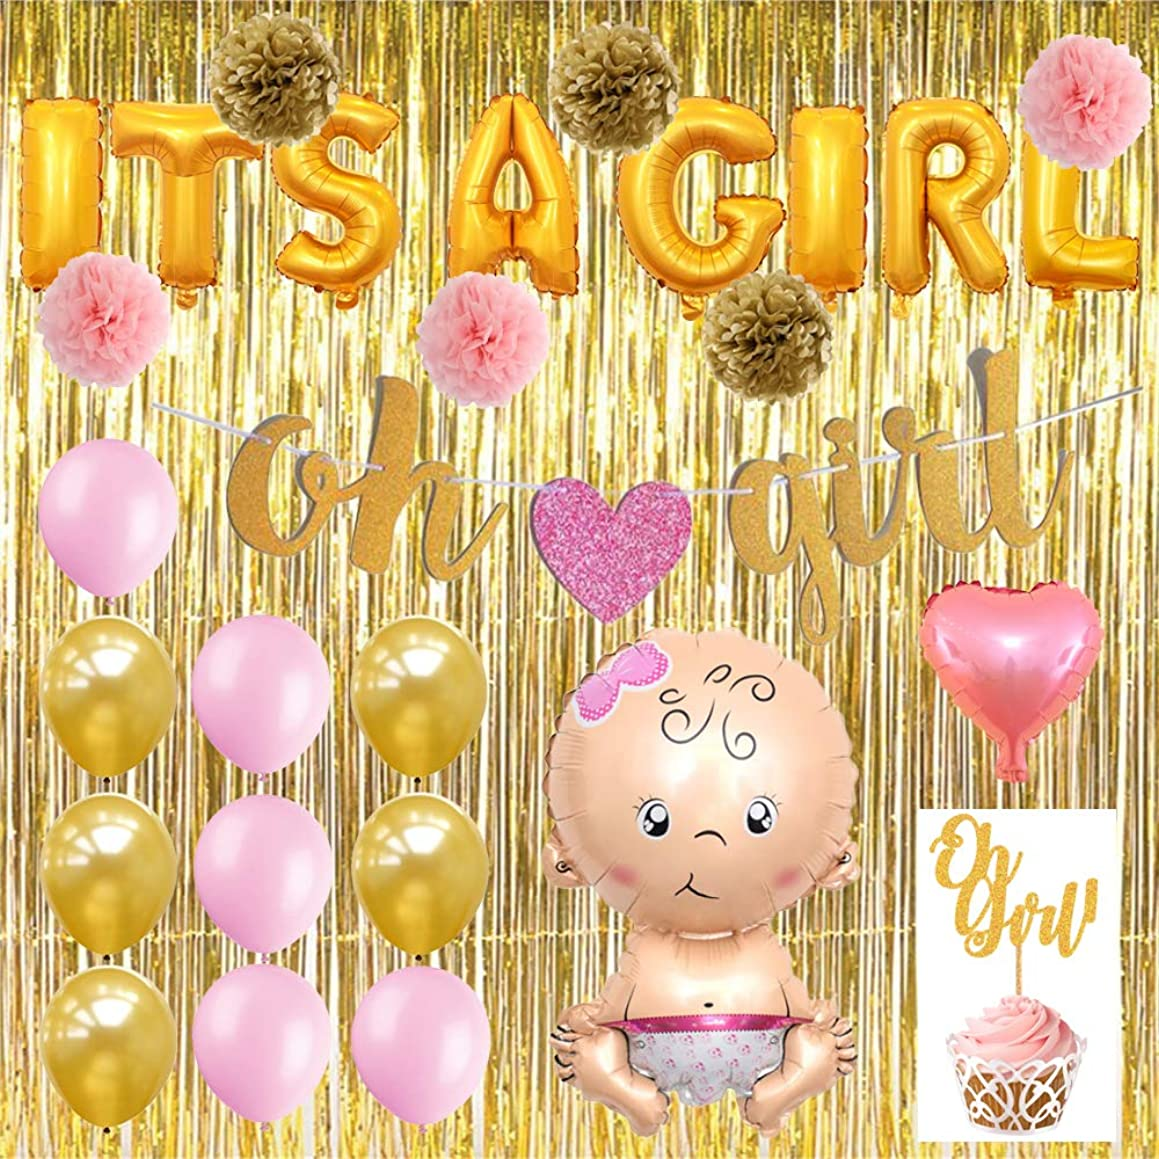 YOLO PRODUCTS Baby Shower Decorations for Girl|It's A Girl Gold Foil Balloon Banner|Bonus Gold Fringe Curtain|Pink Heart Foil Balloon|Baby Foil Balloon|Paper Oh Girl Banner| Premium Latex Balloons